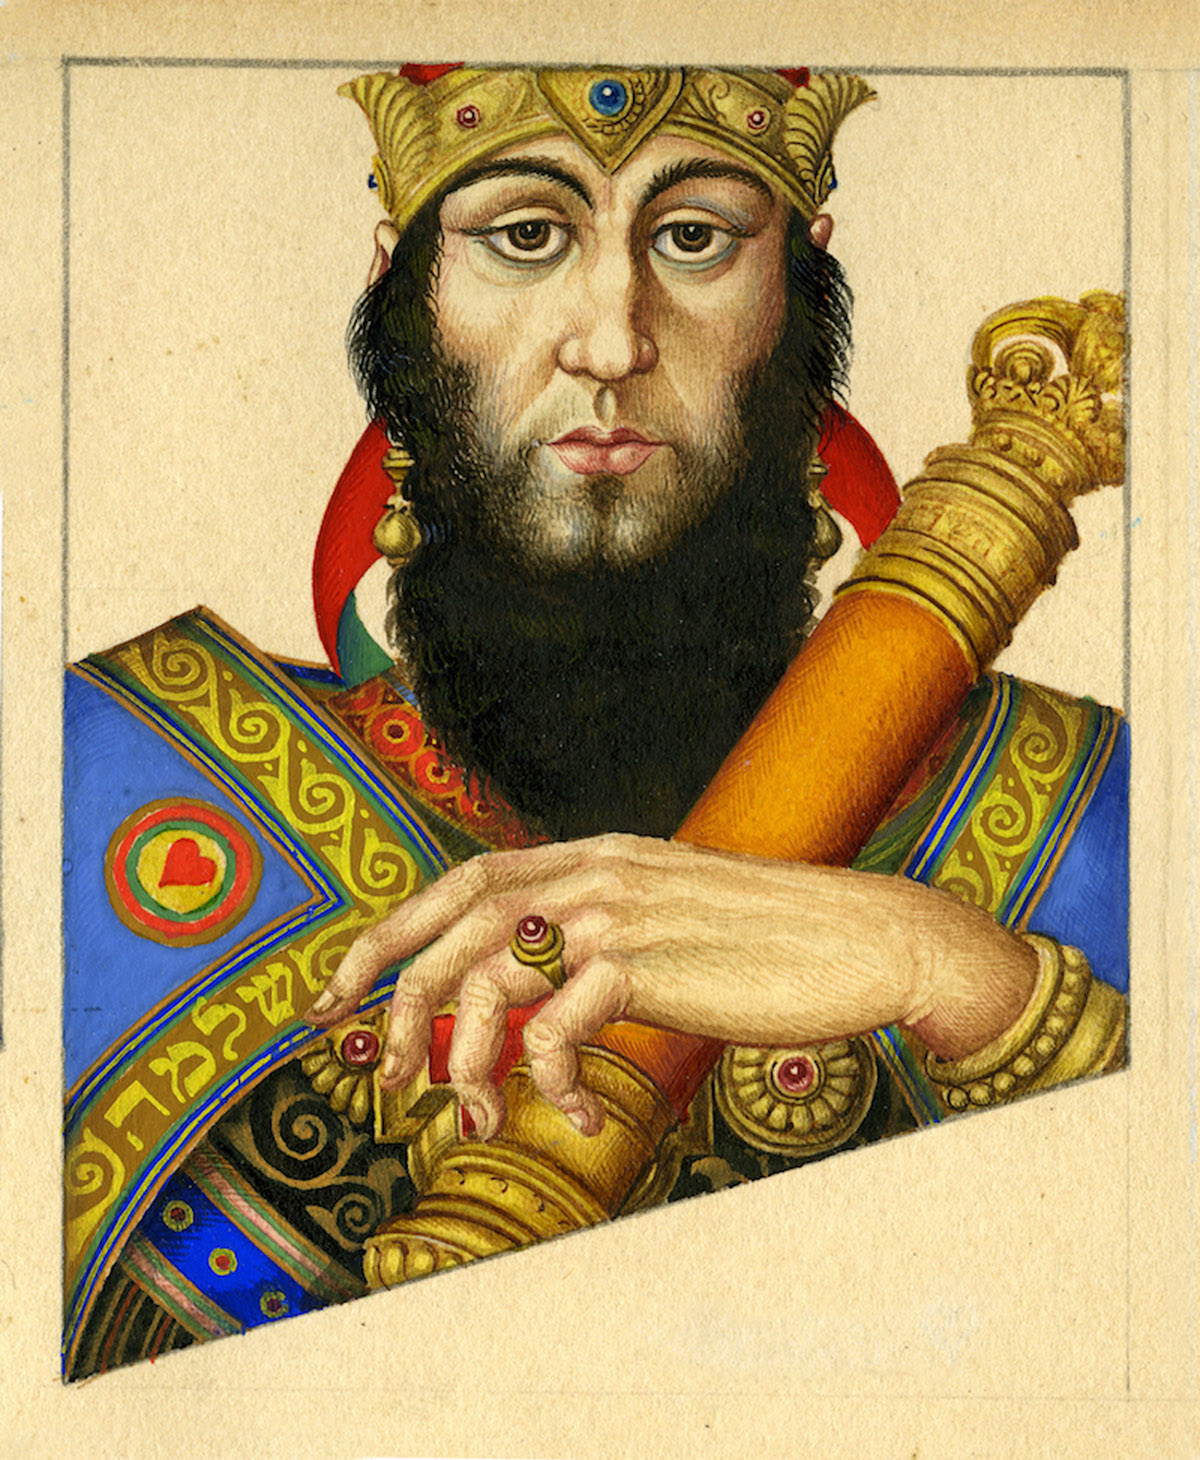 King Solomon, King of Hearts by Arthur Szyk Heroes of Ancient Israel: Playing Card Art published by Historicana